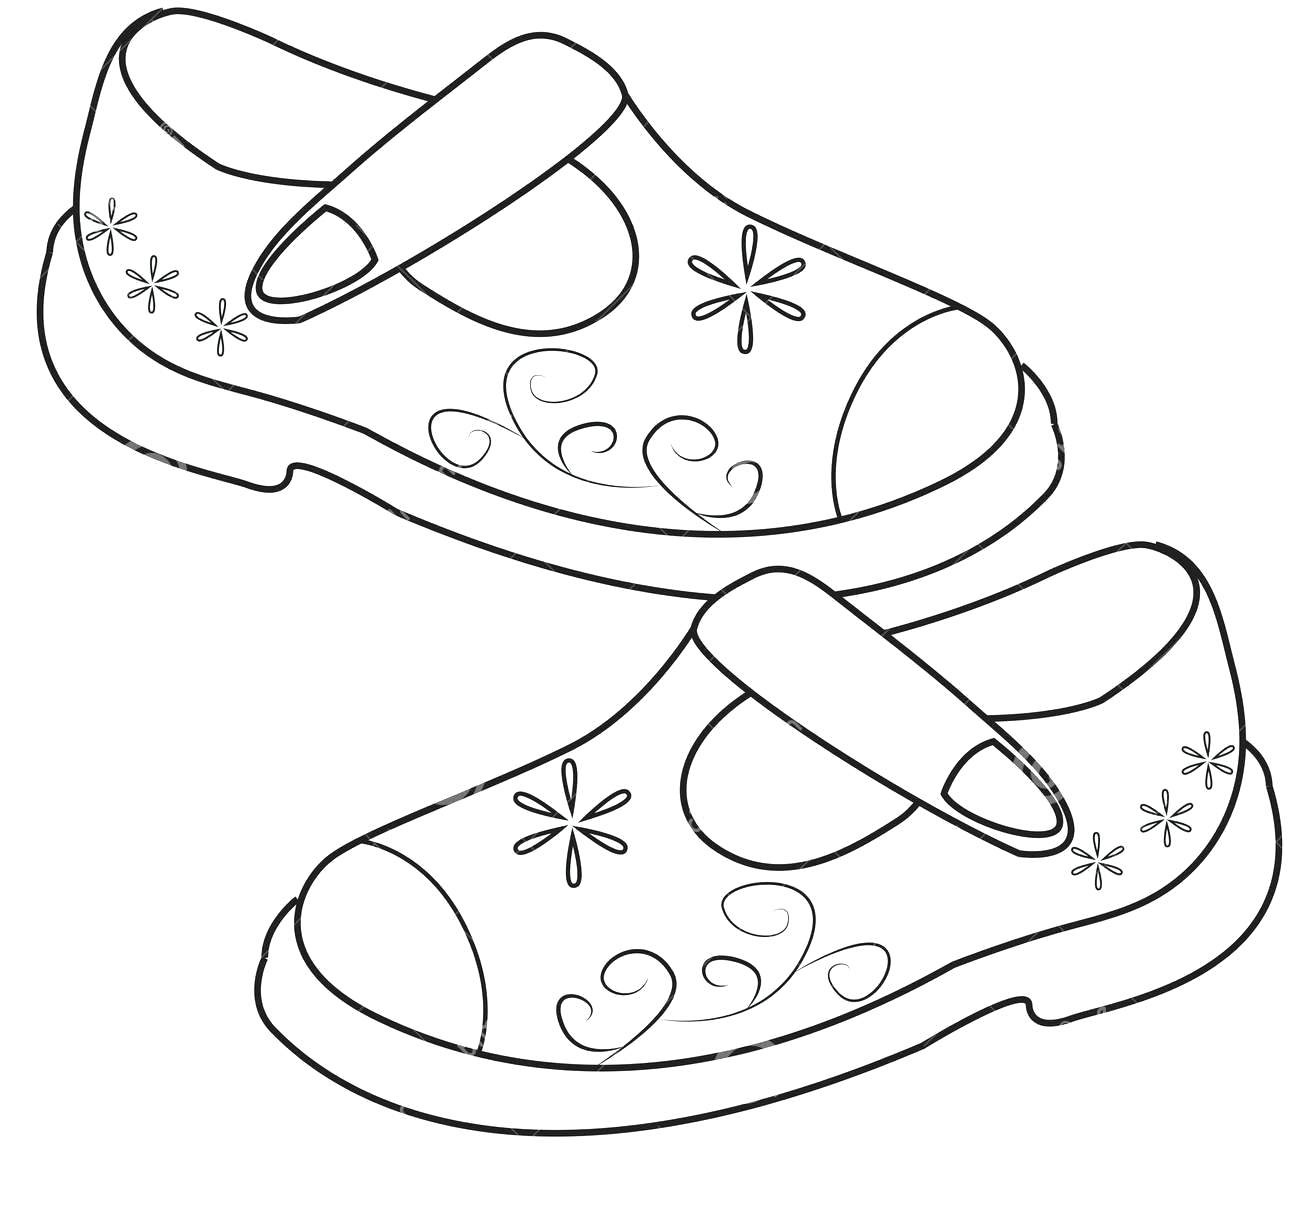 printable shoes basketball shoe coloring pages download and print for free printable shoes